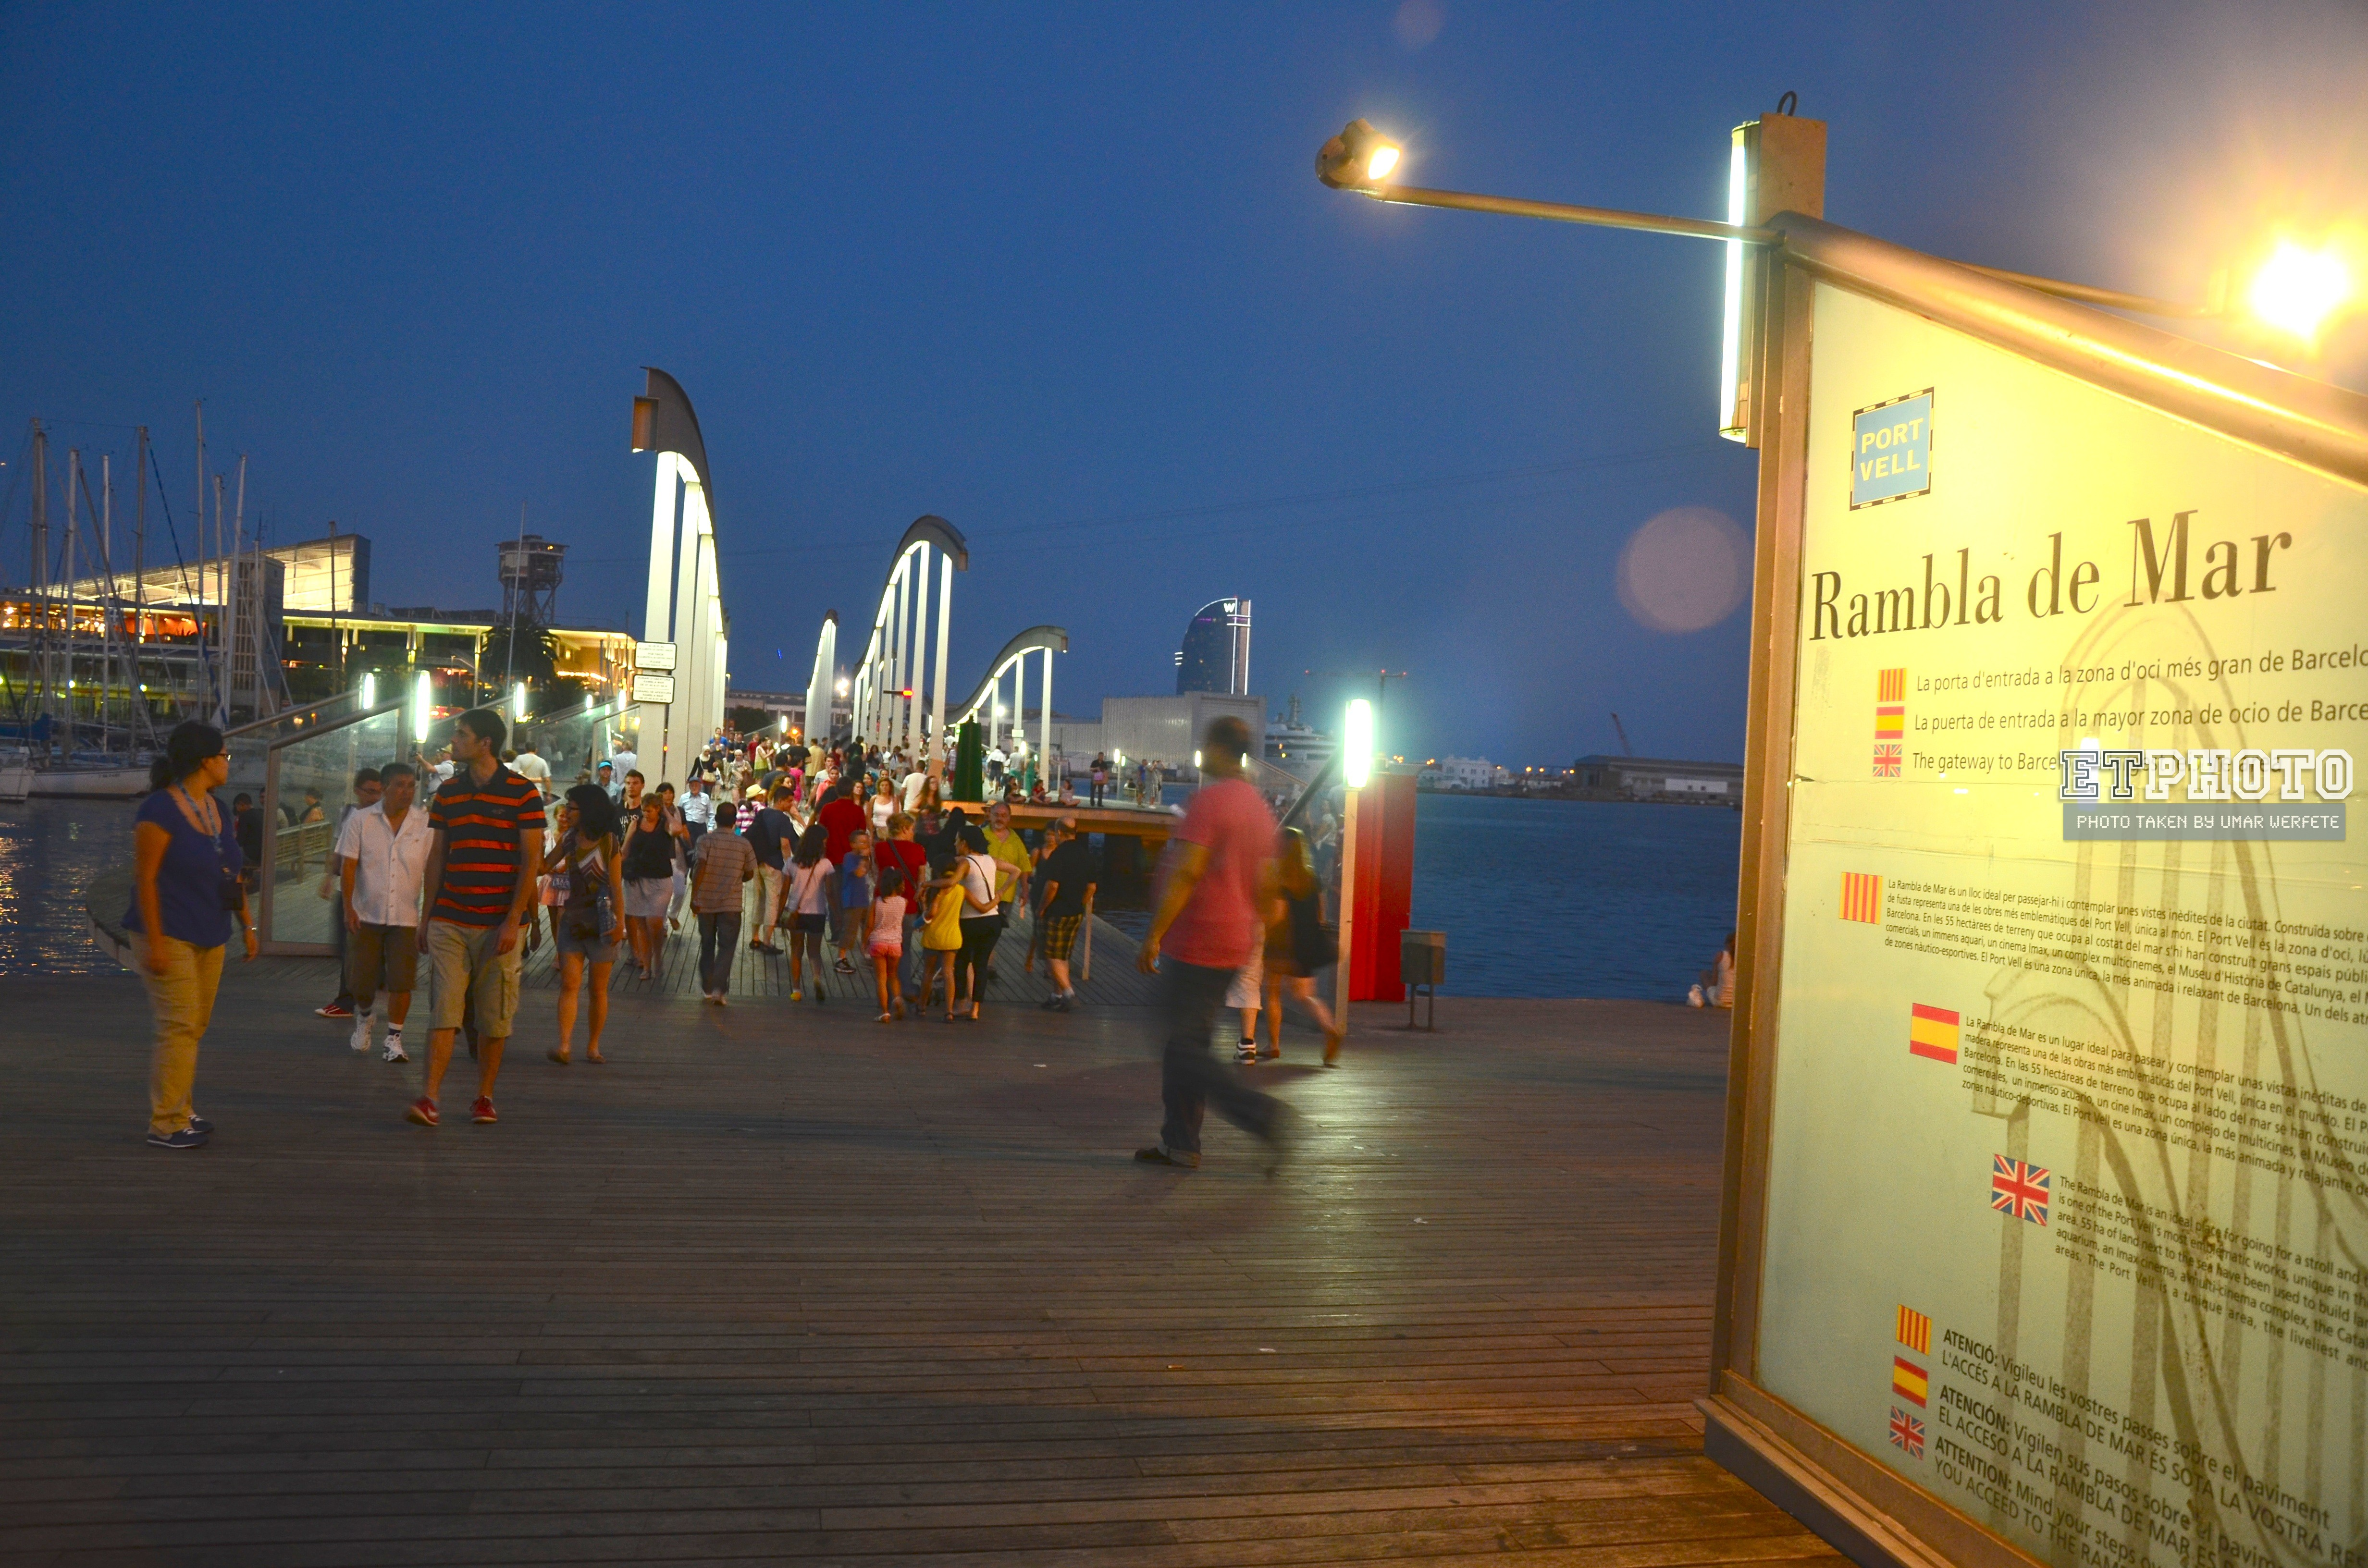 Rambla de Mar; Recomended Spot to See in Barcelona